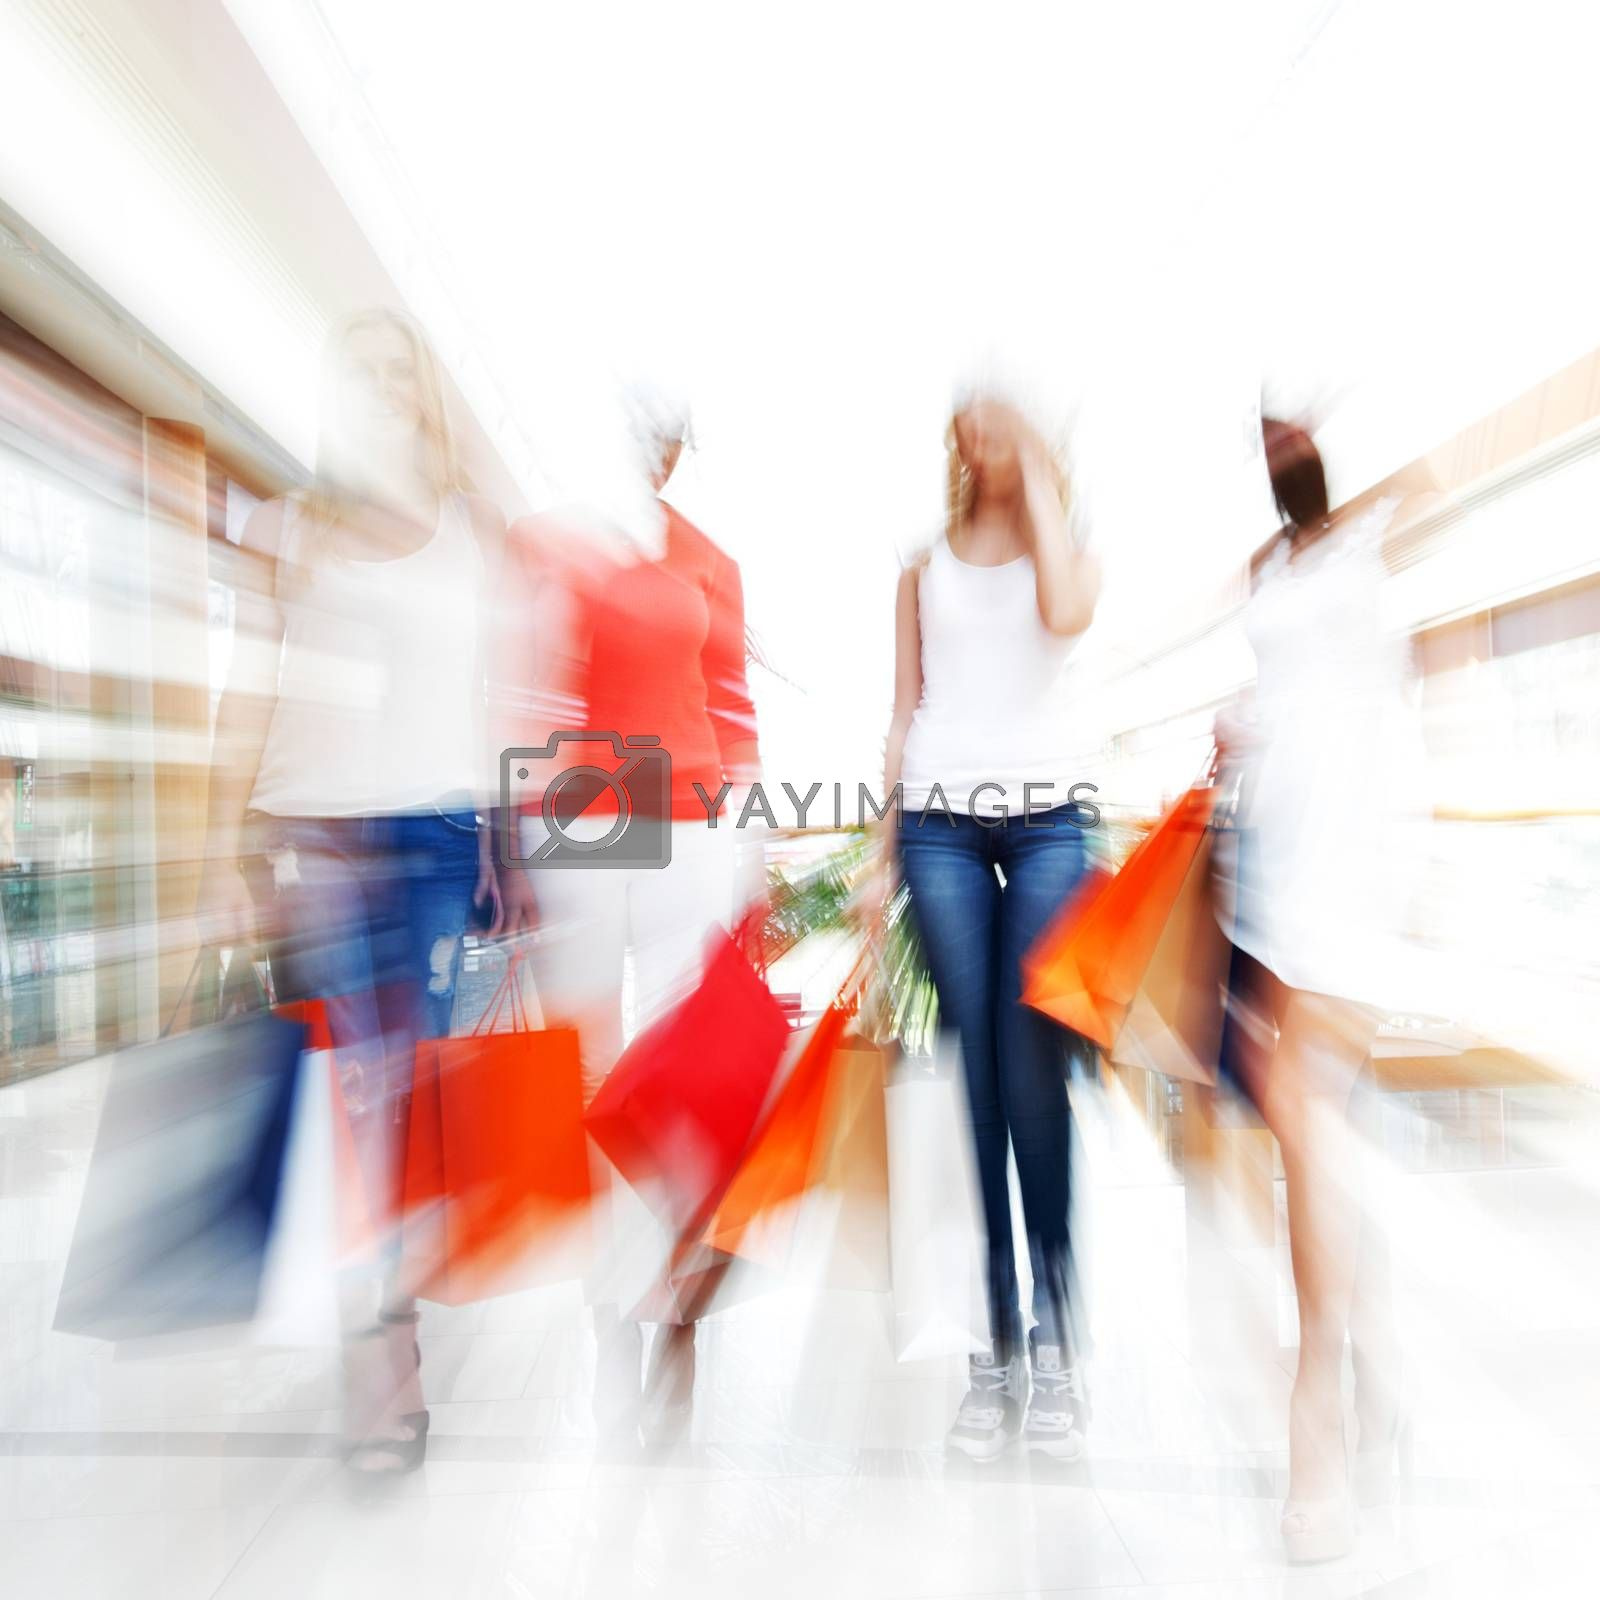 Fast shopping abstract background by ALotOfPeople